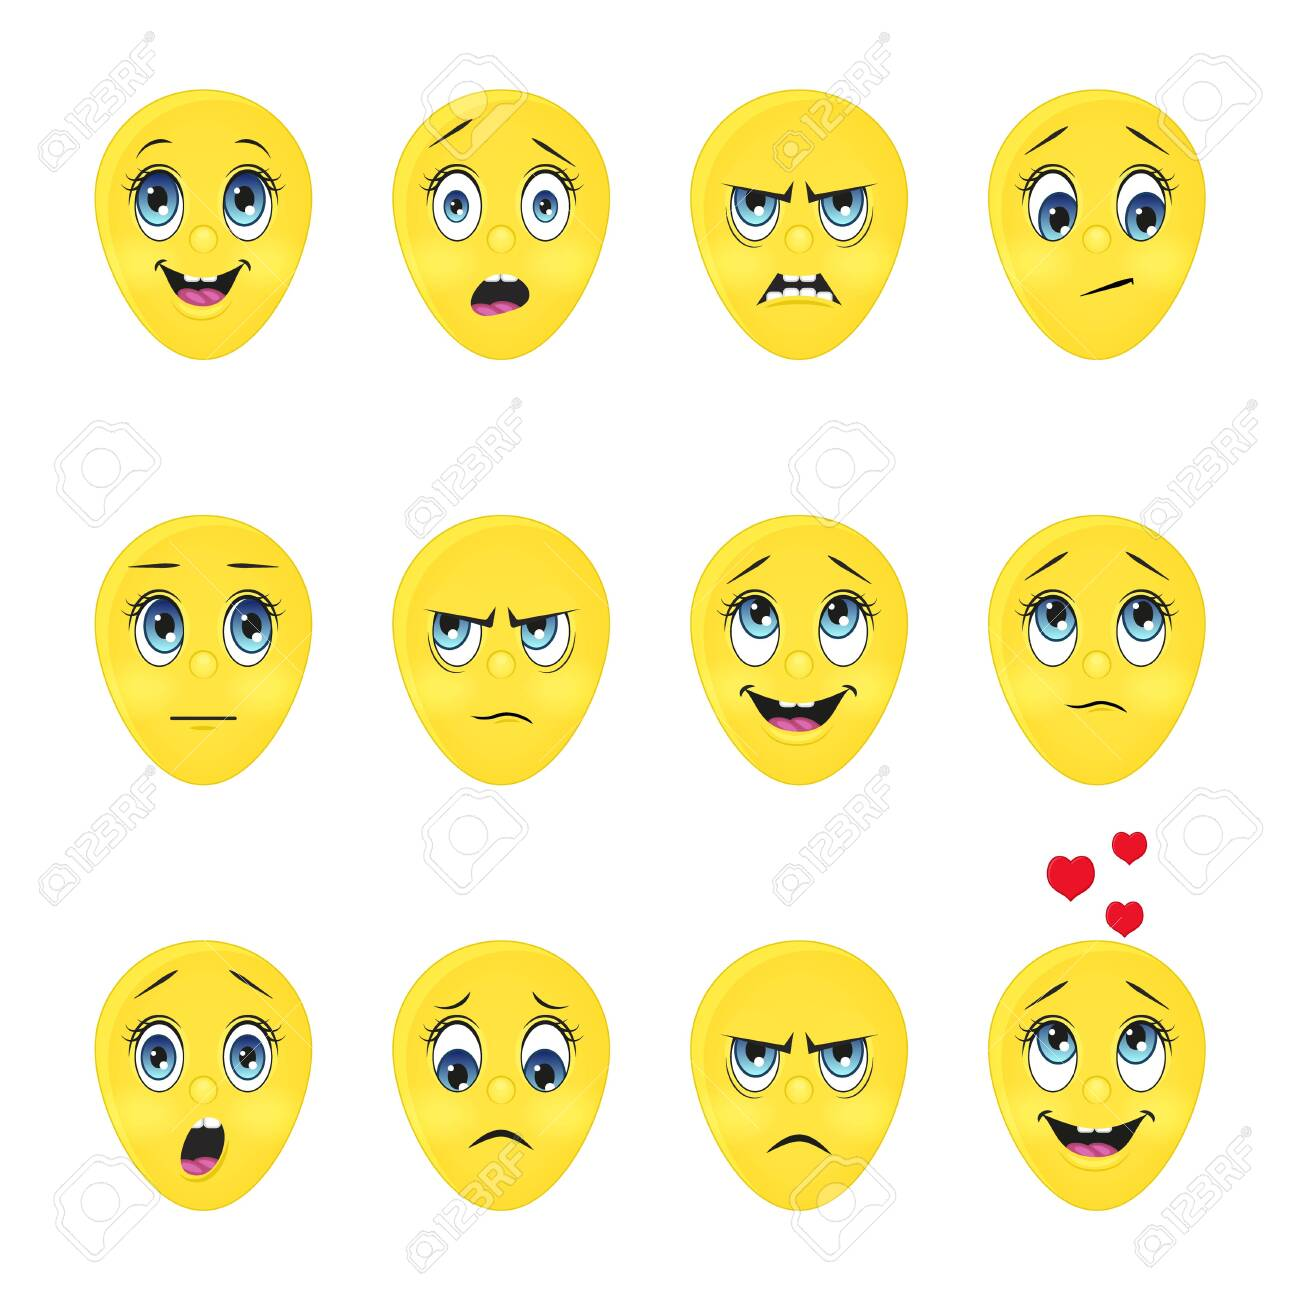 Collection of cute emoji. Cartoon style. Vector illustration. Isolated on white. Object for communication, web. - 137652969